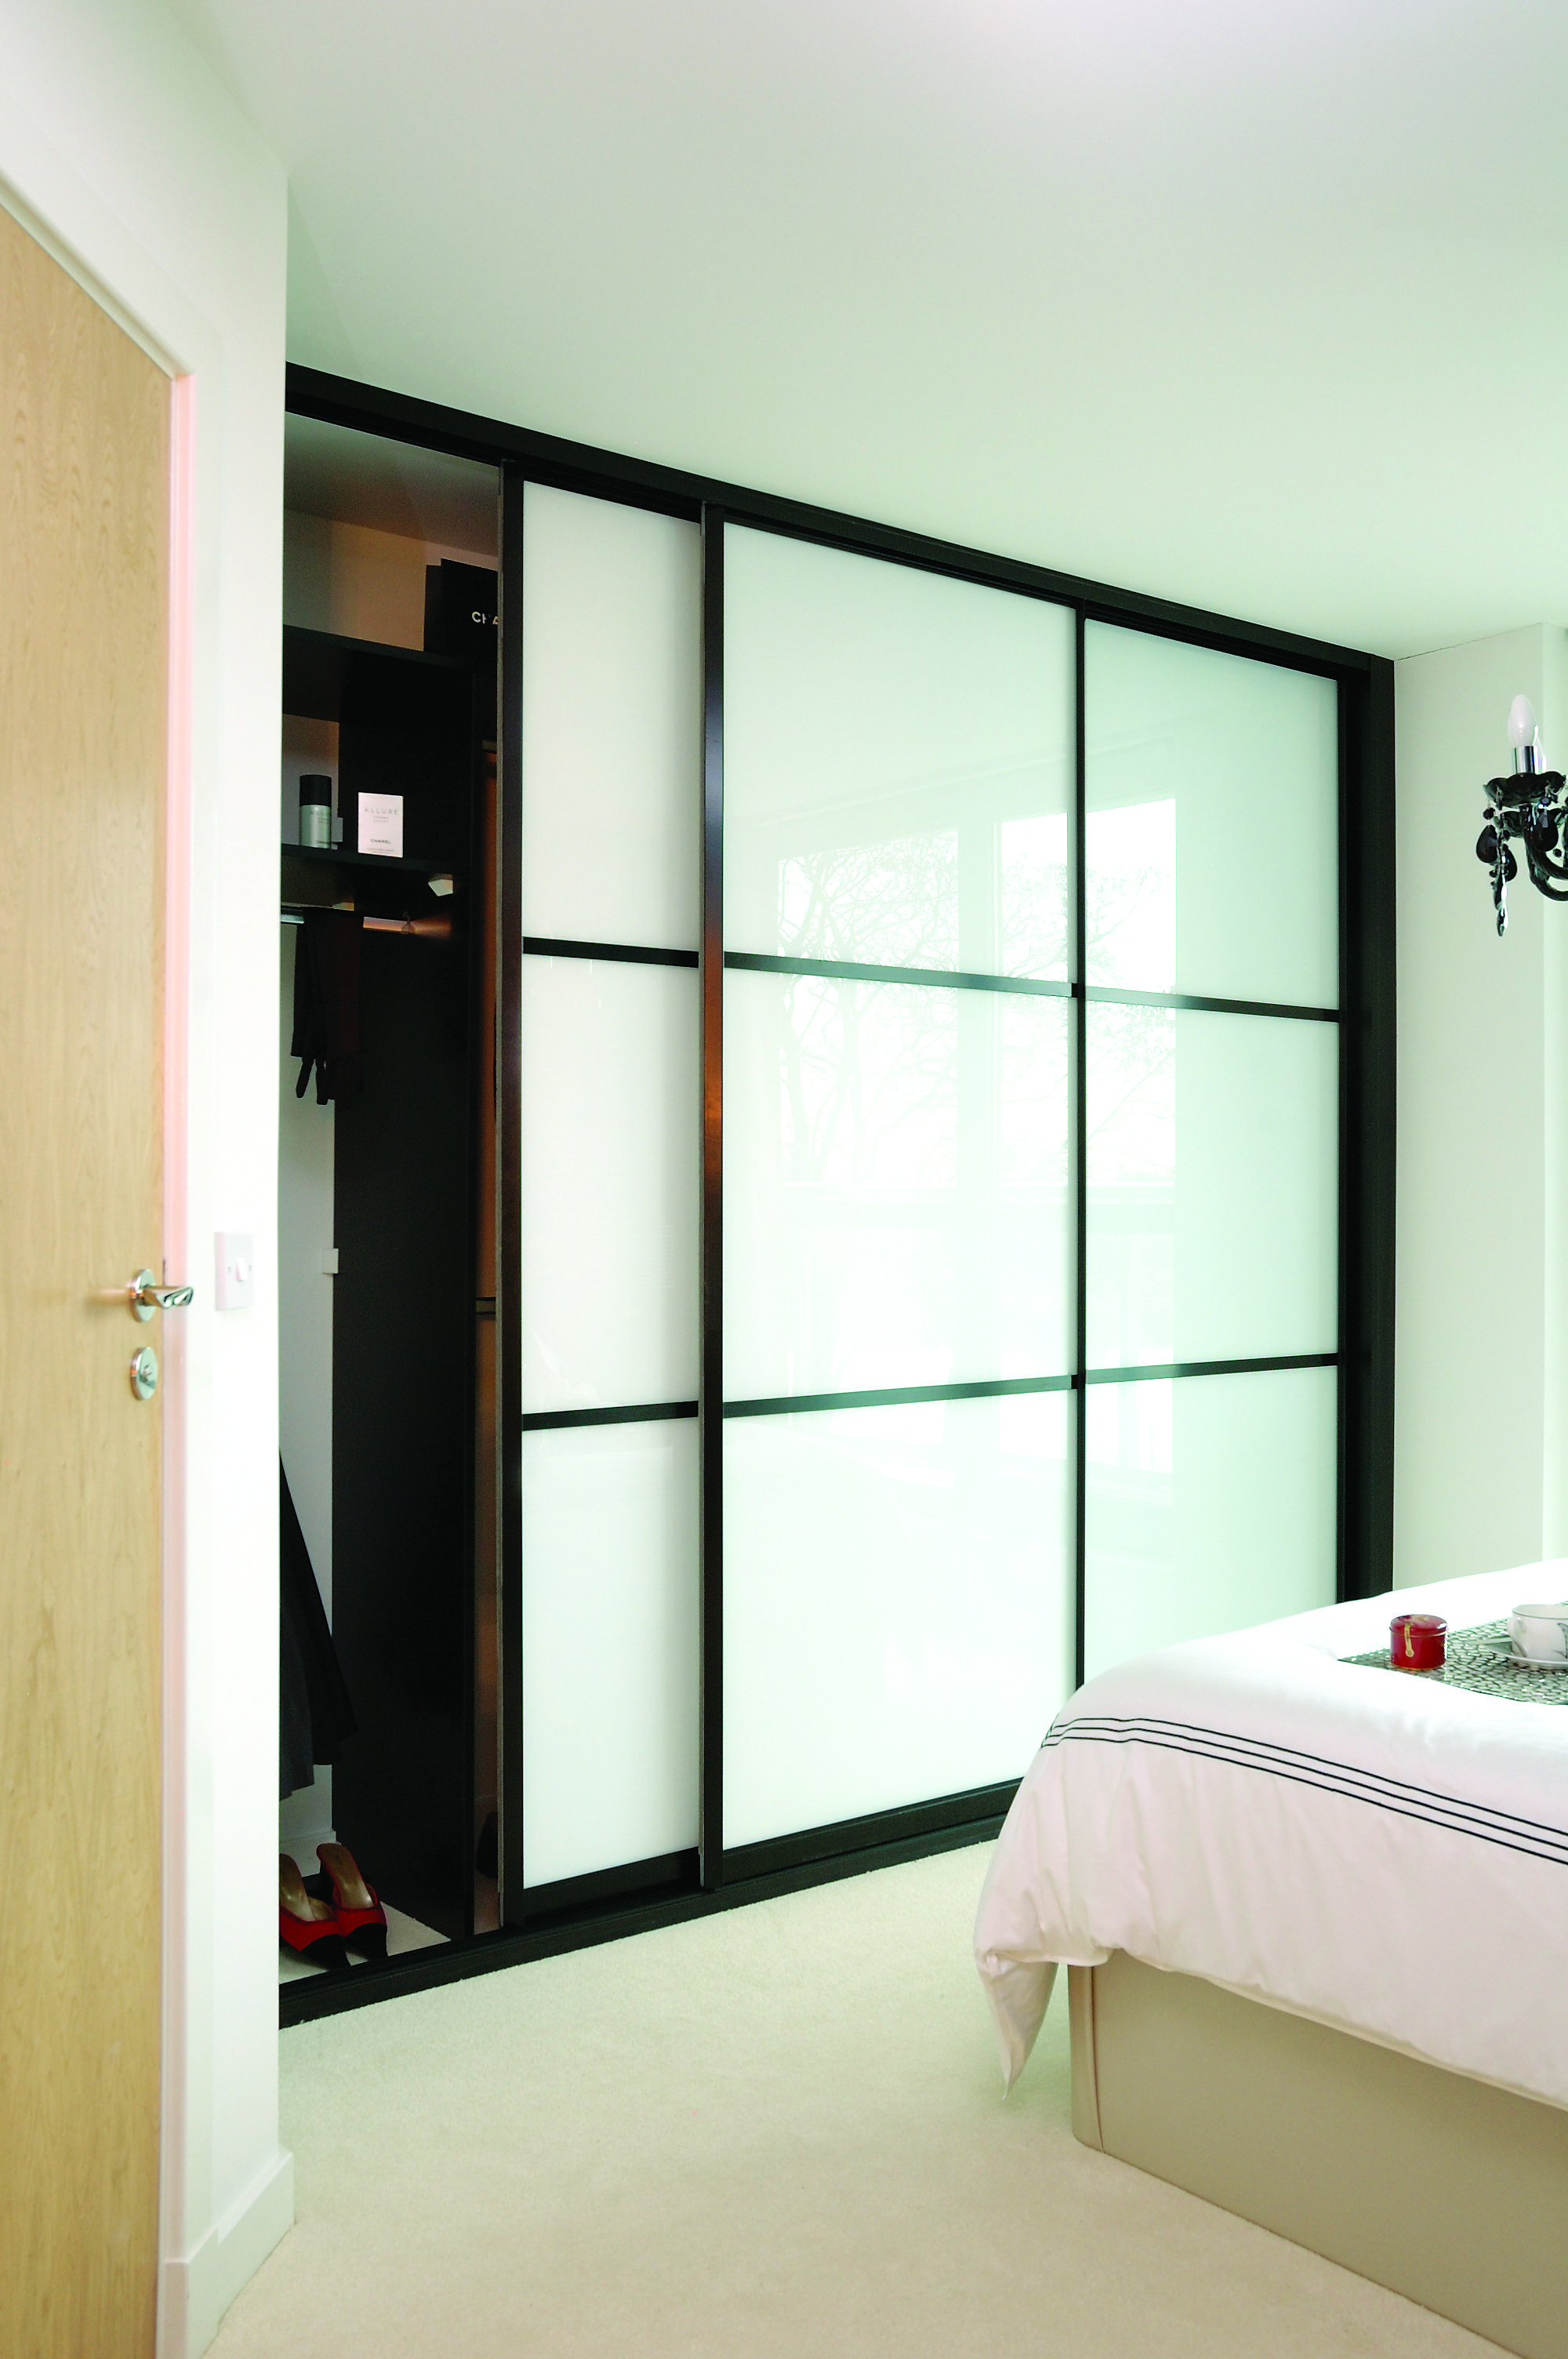 Bedroom closet doors Kensington range sliding wardrobe door with Japanese style panels and white glass